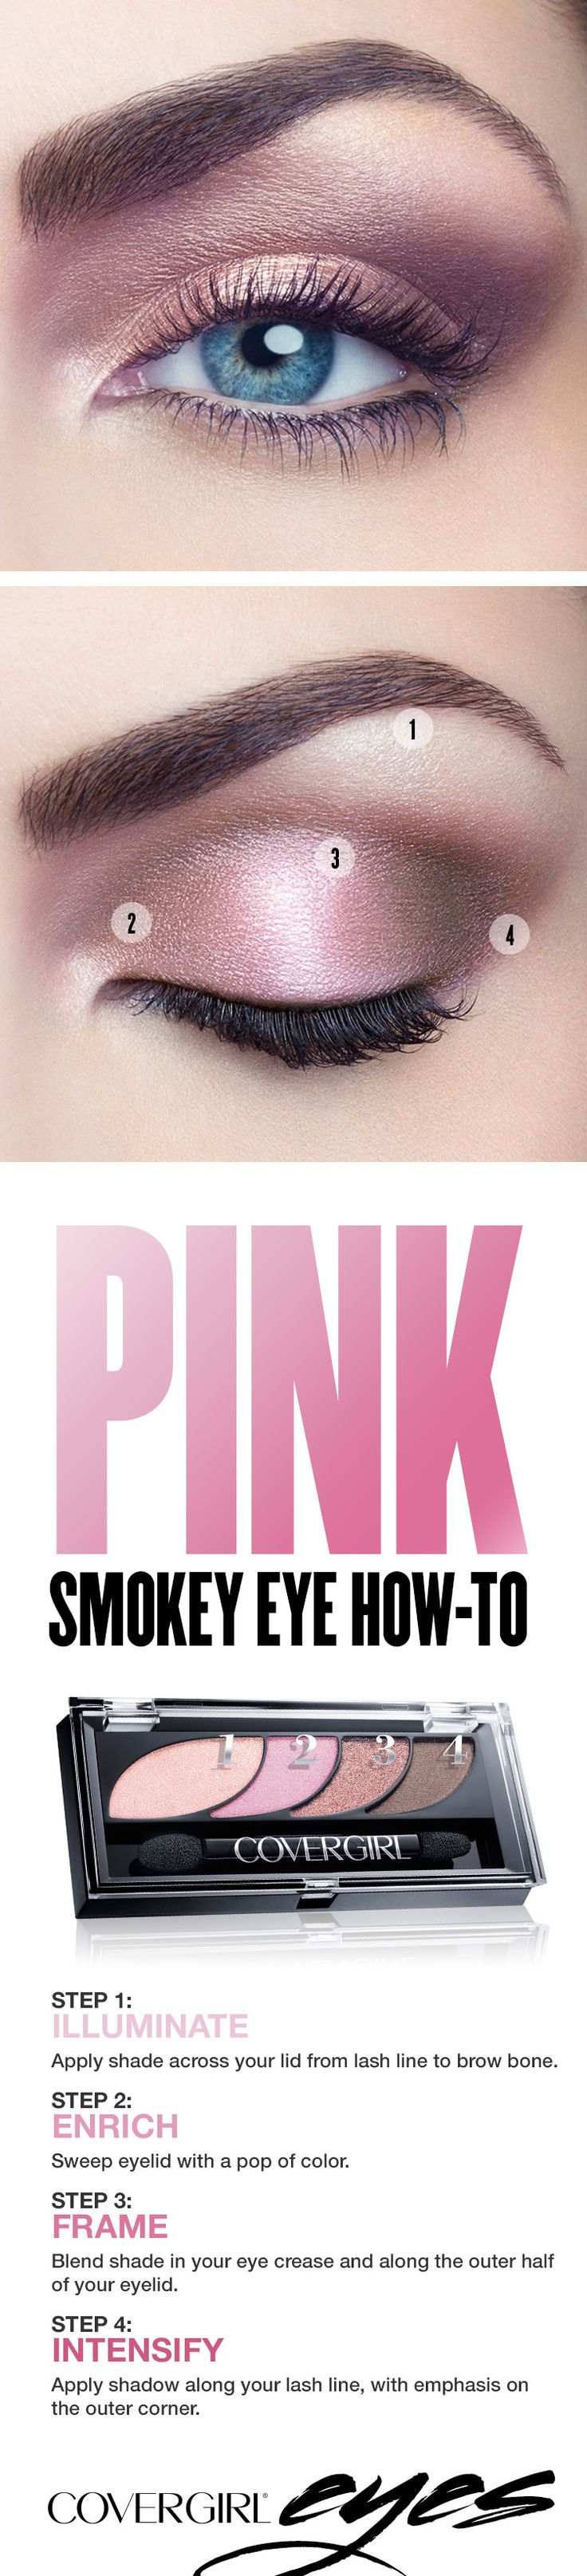 pink smokey eye makeup tutorial